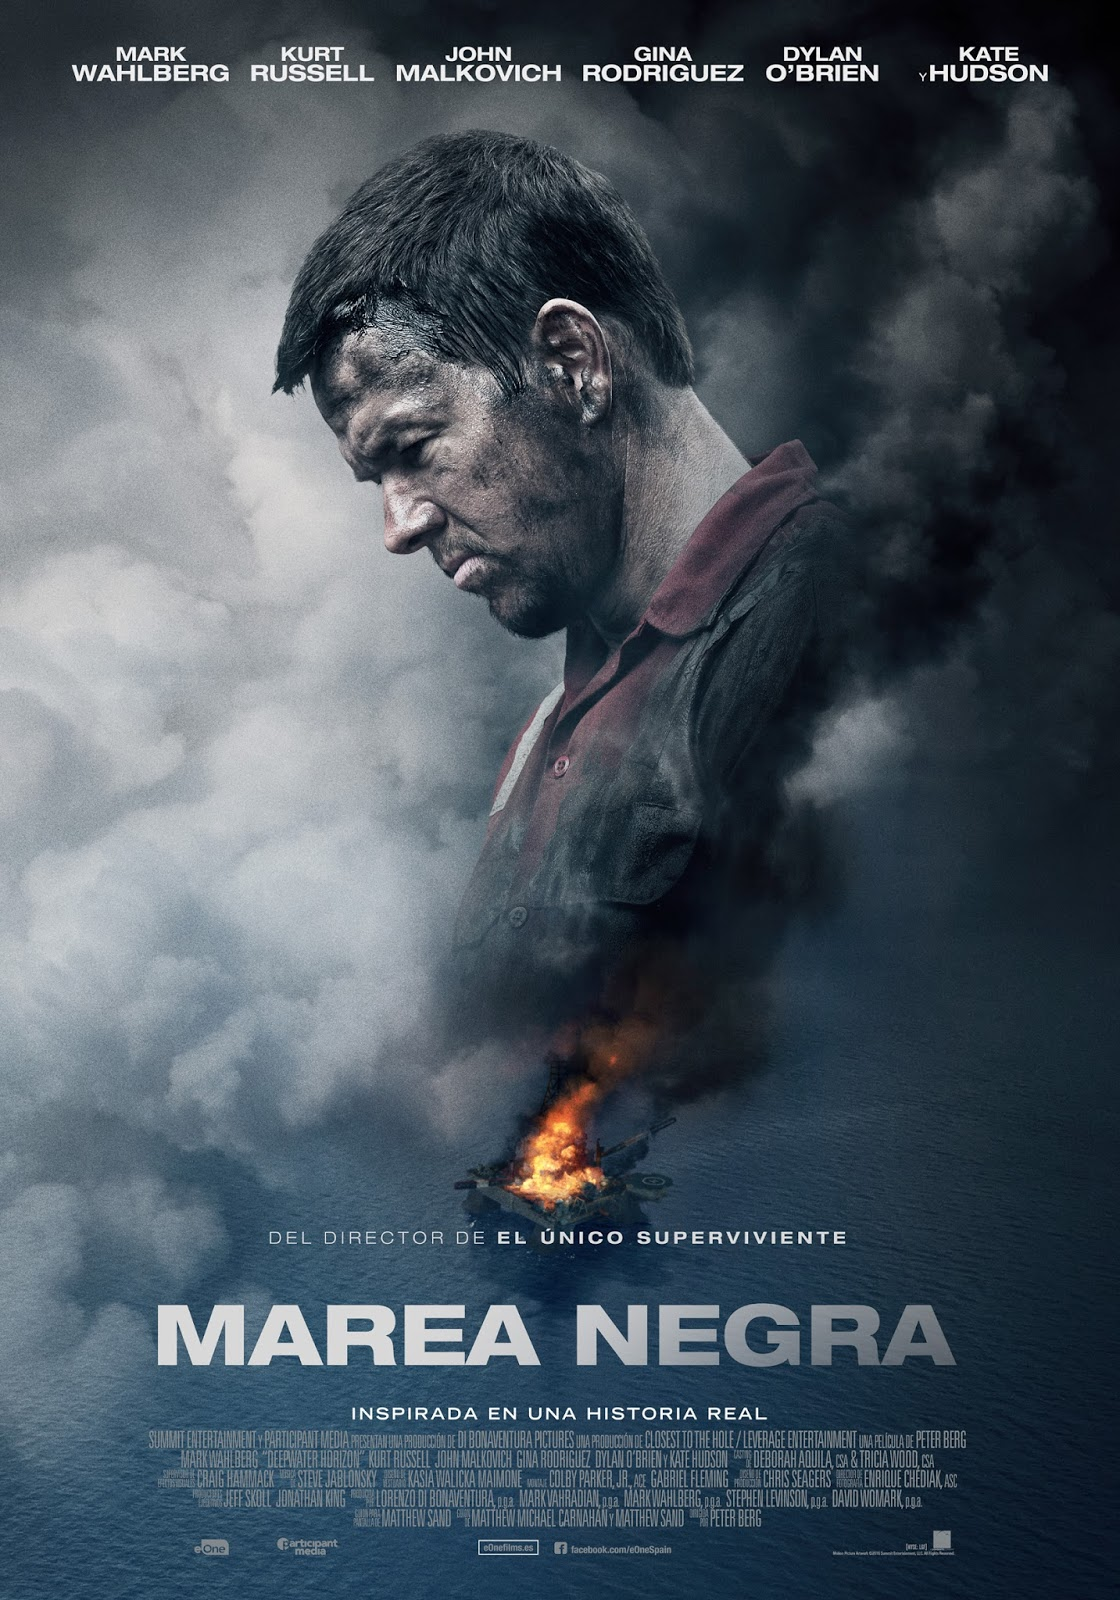 cartel final MAREA NEGRA.JPG